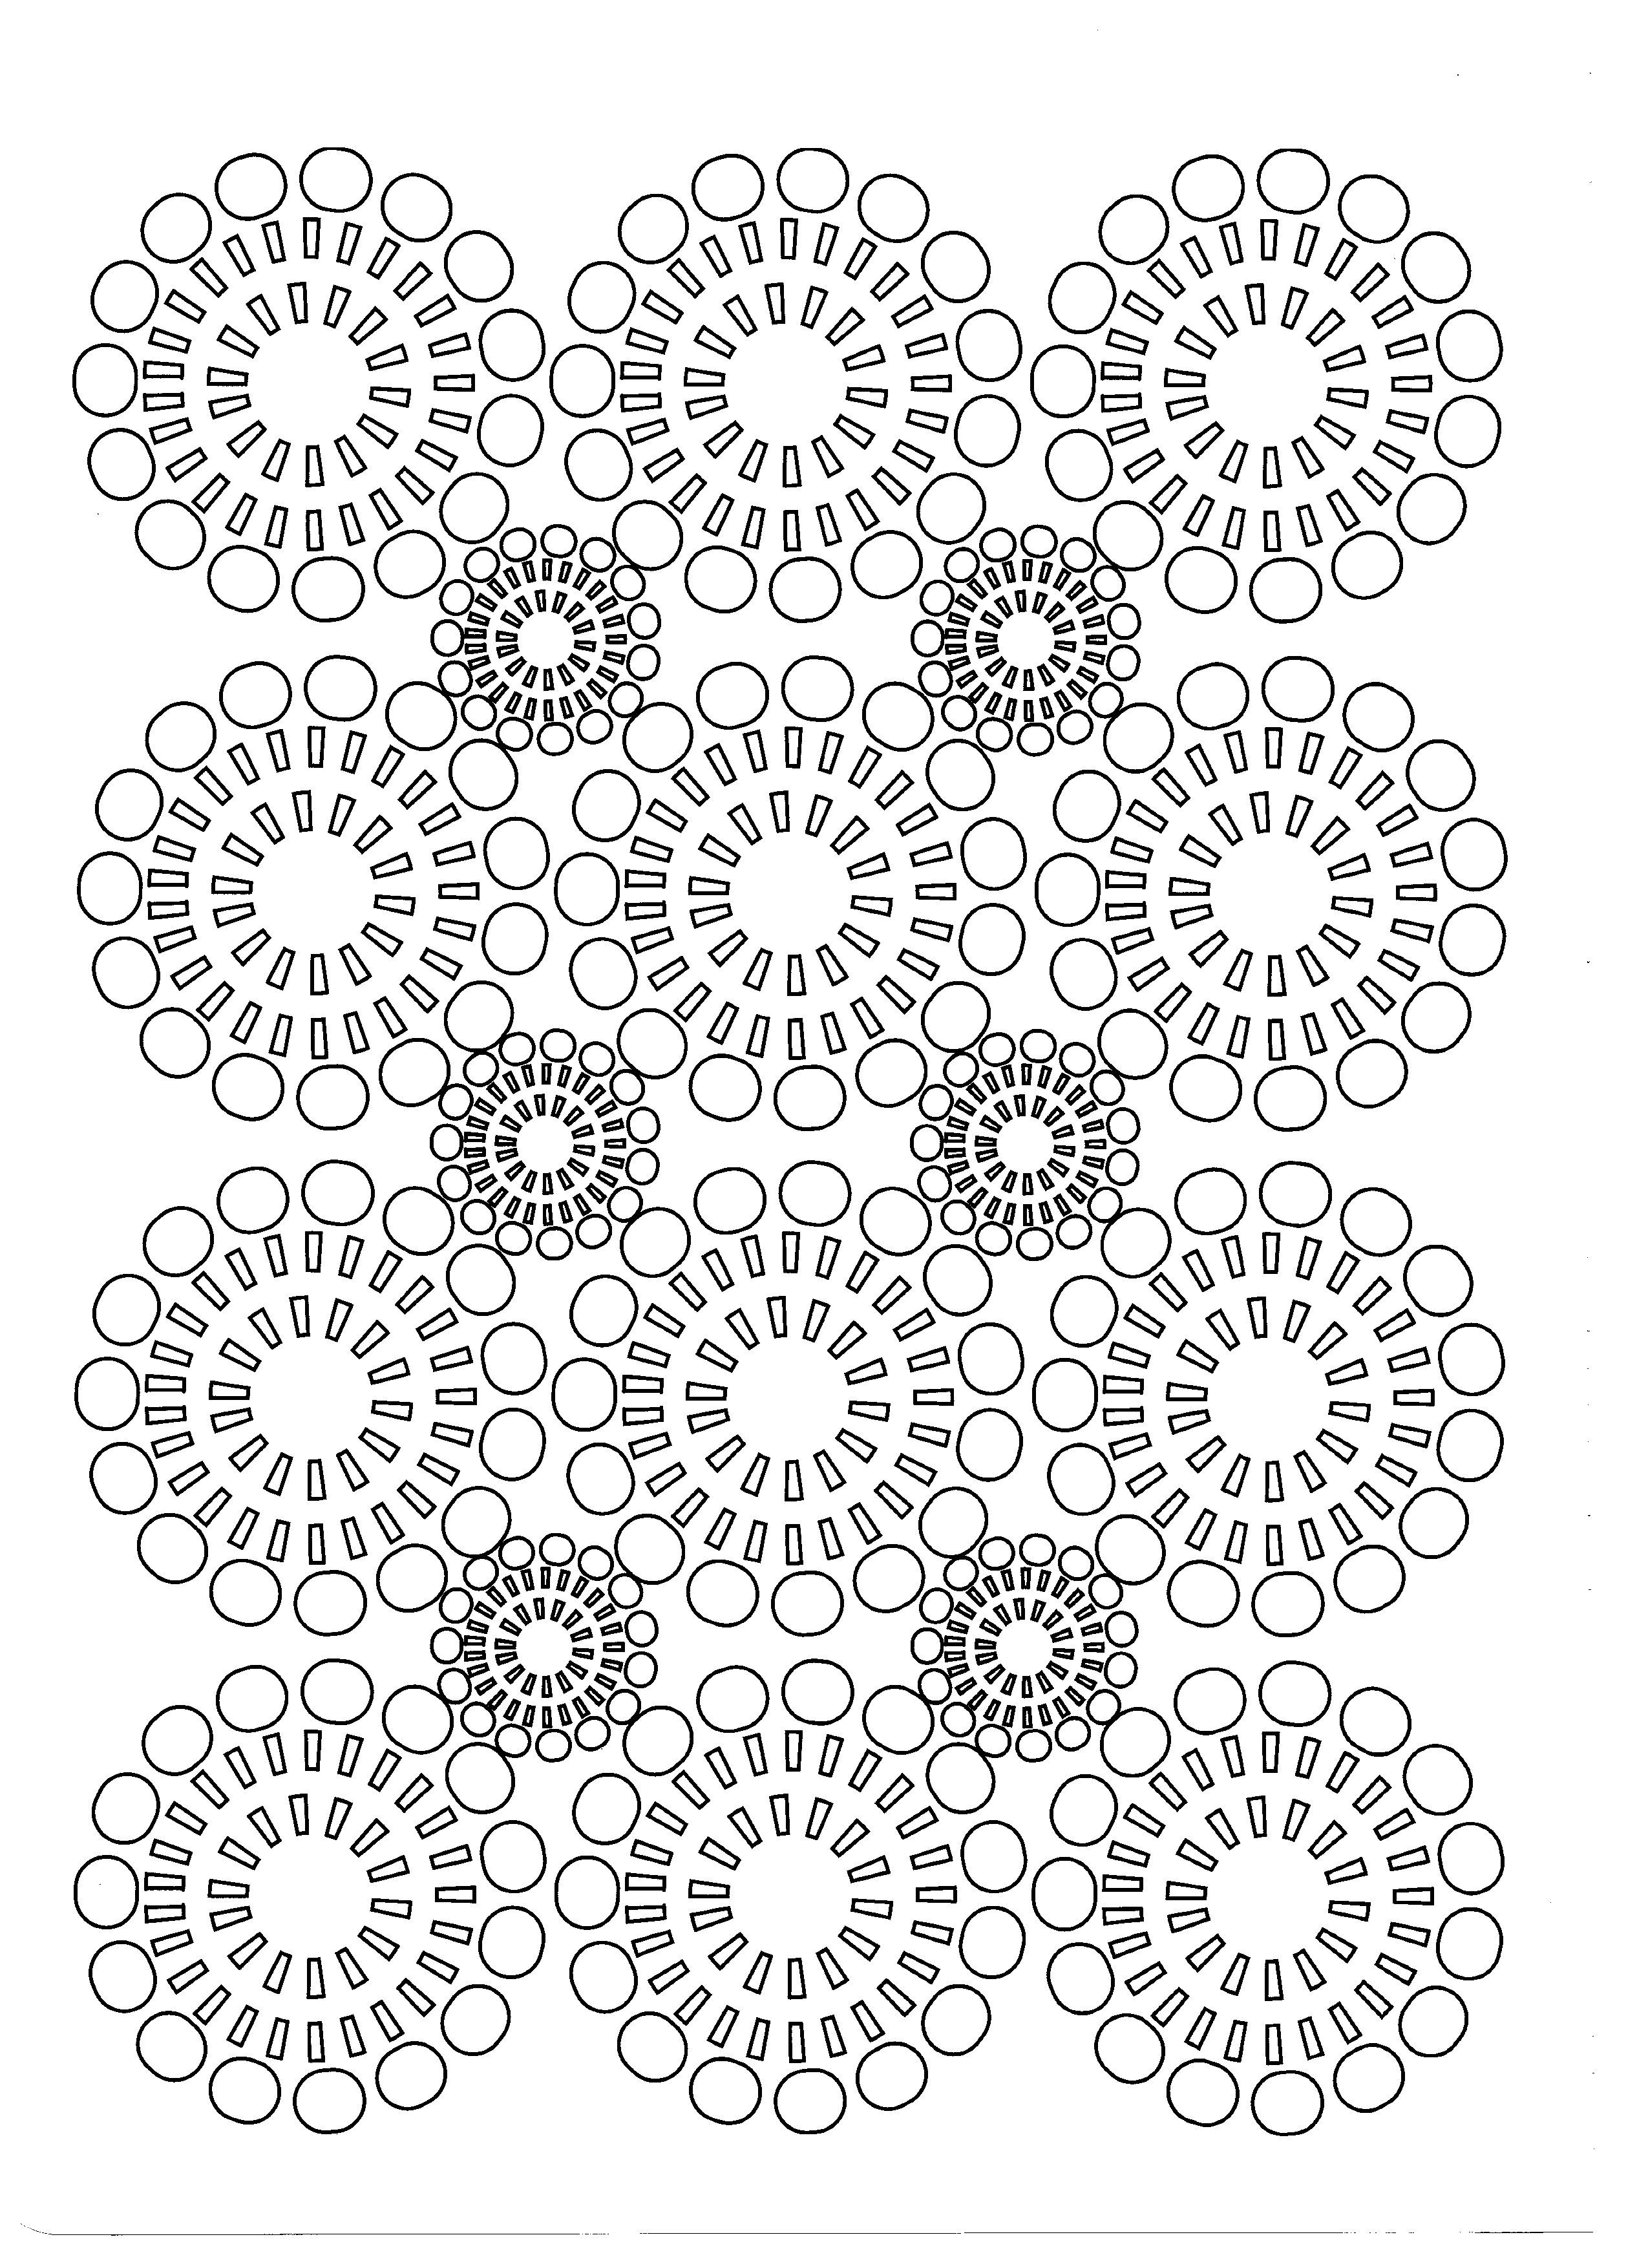 Free coloring page coloring-adult-circles-flowers. | Coloring pages ...